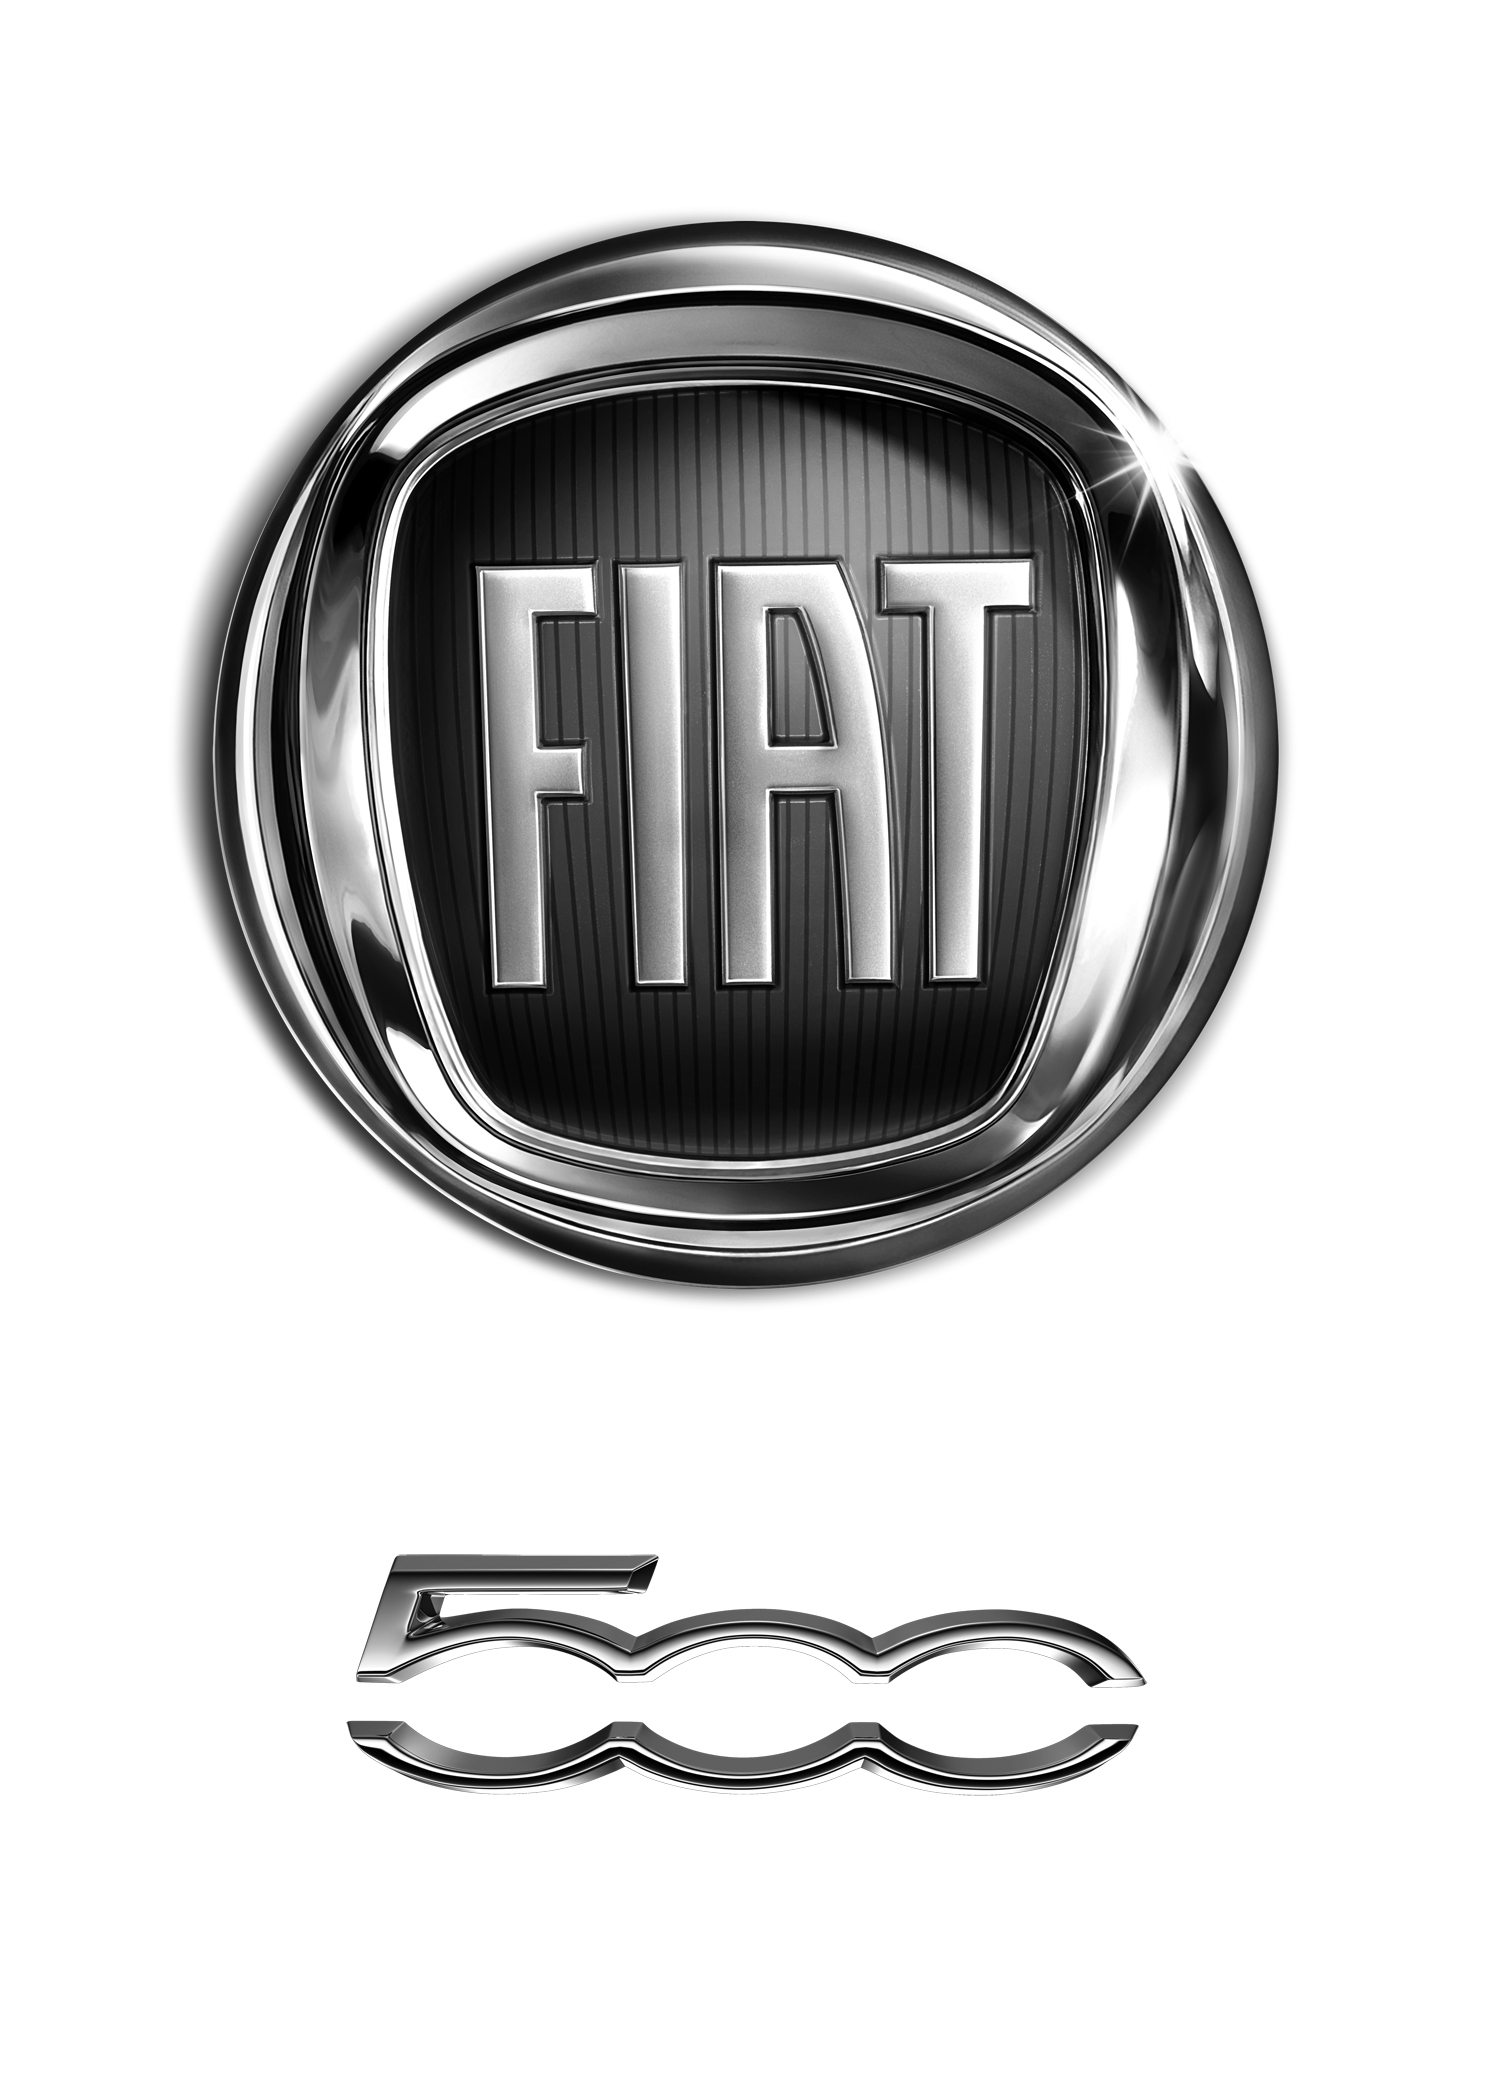 DealerCONNECT FIAT - Dealerconnect chrysler